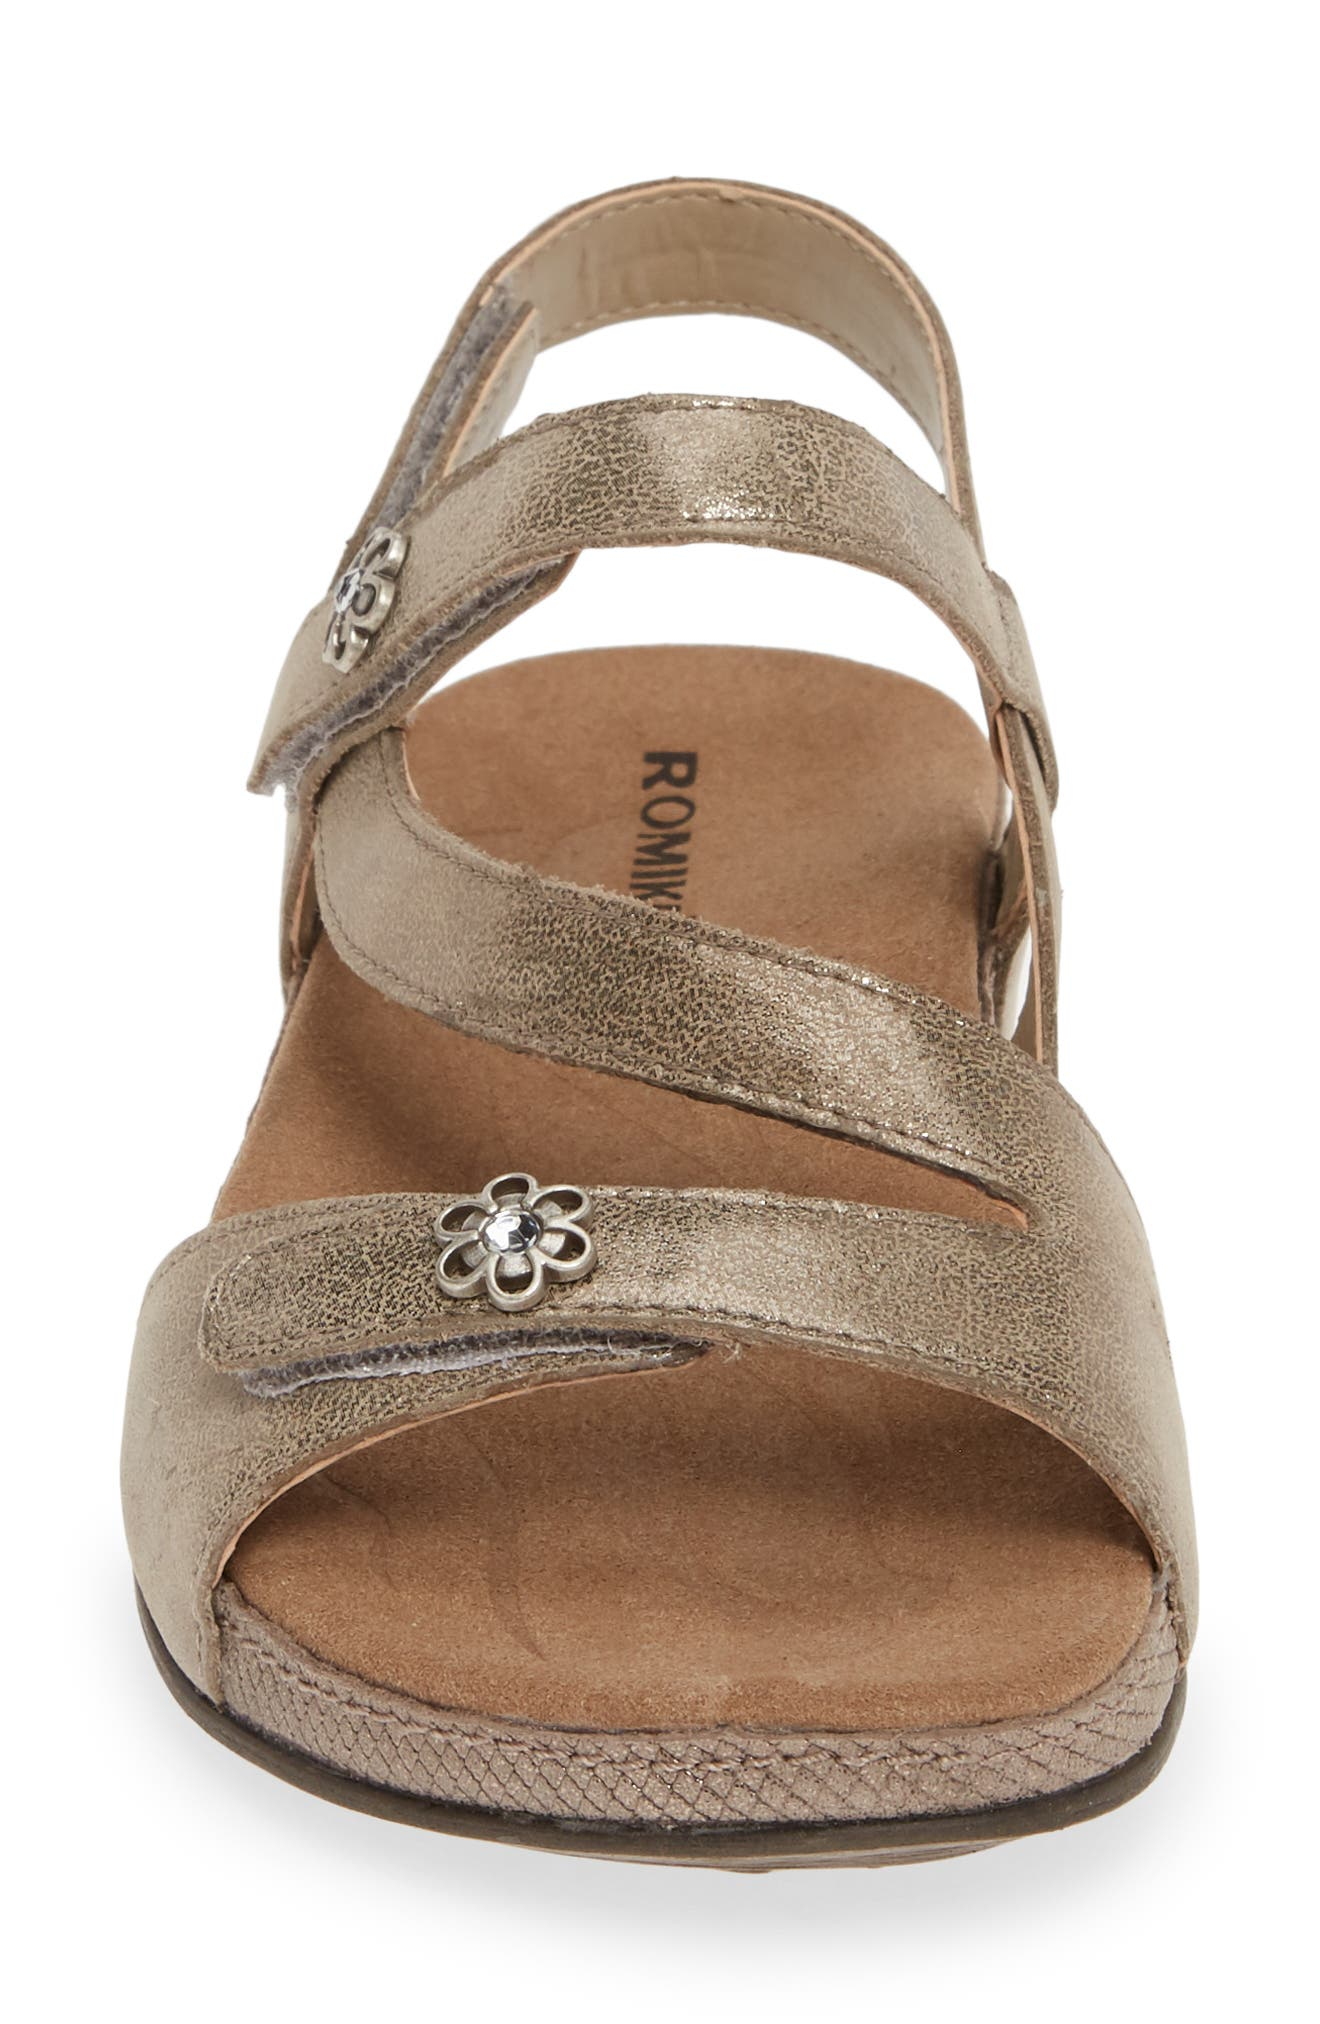 ROMIKA<SUP>®</SUP>, Fidschi 54 Sandal, Alternate thumbnail 4, color, BRONZE LEATHER